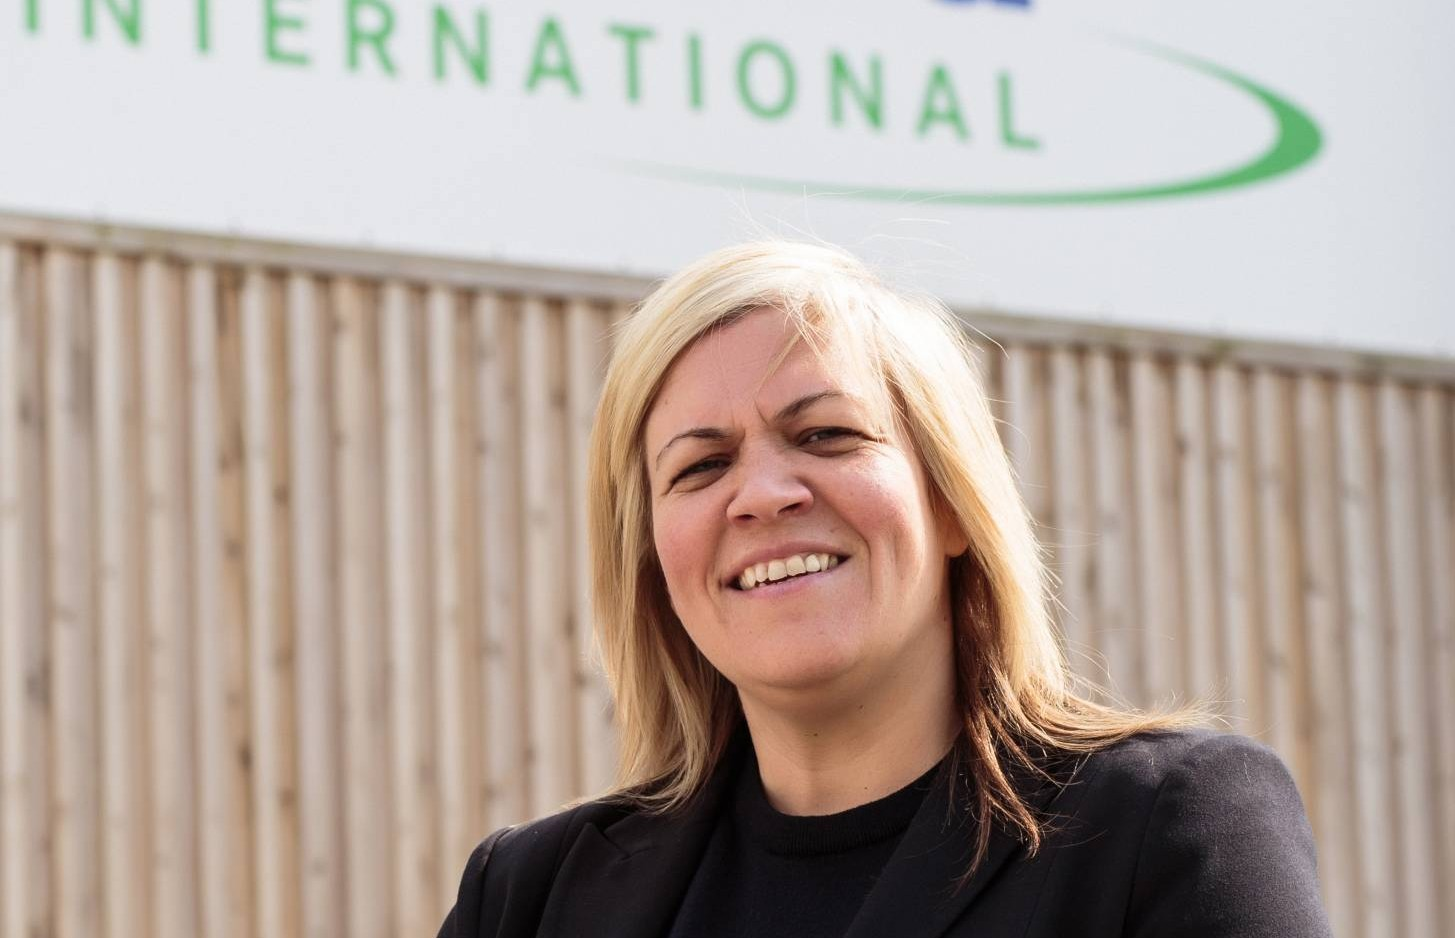 Oakland International Director Honoured to Join Finalists at Women in Logistics UK Awards